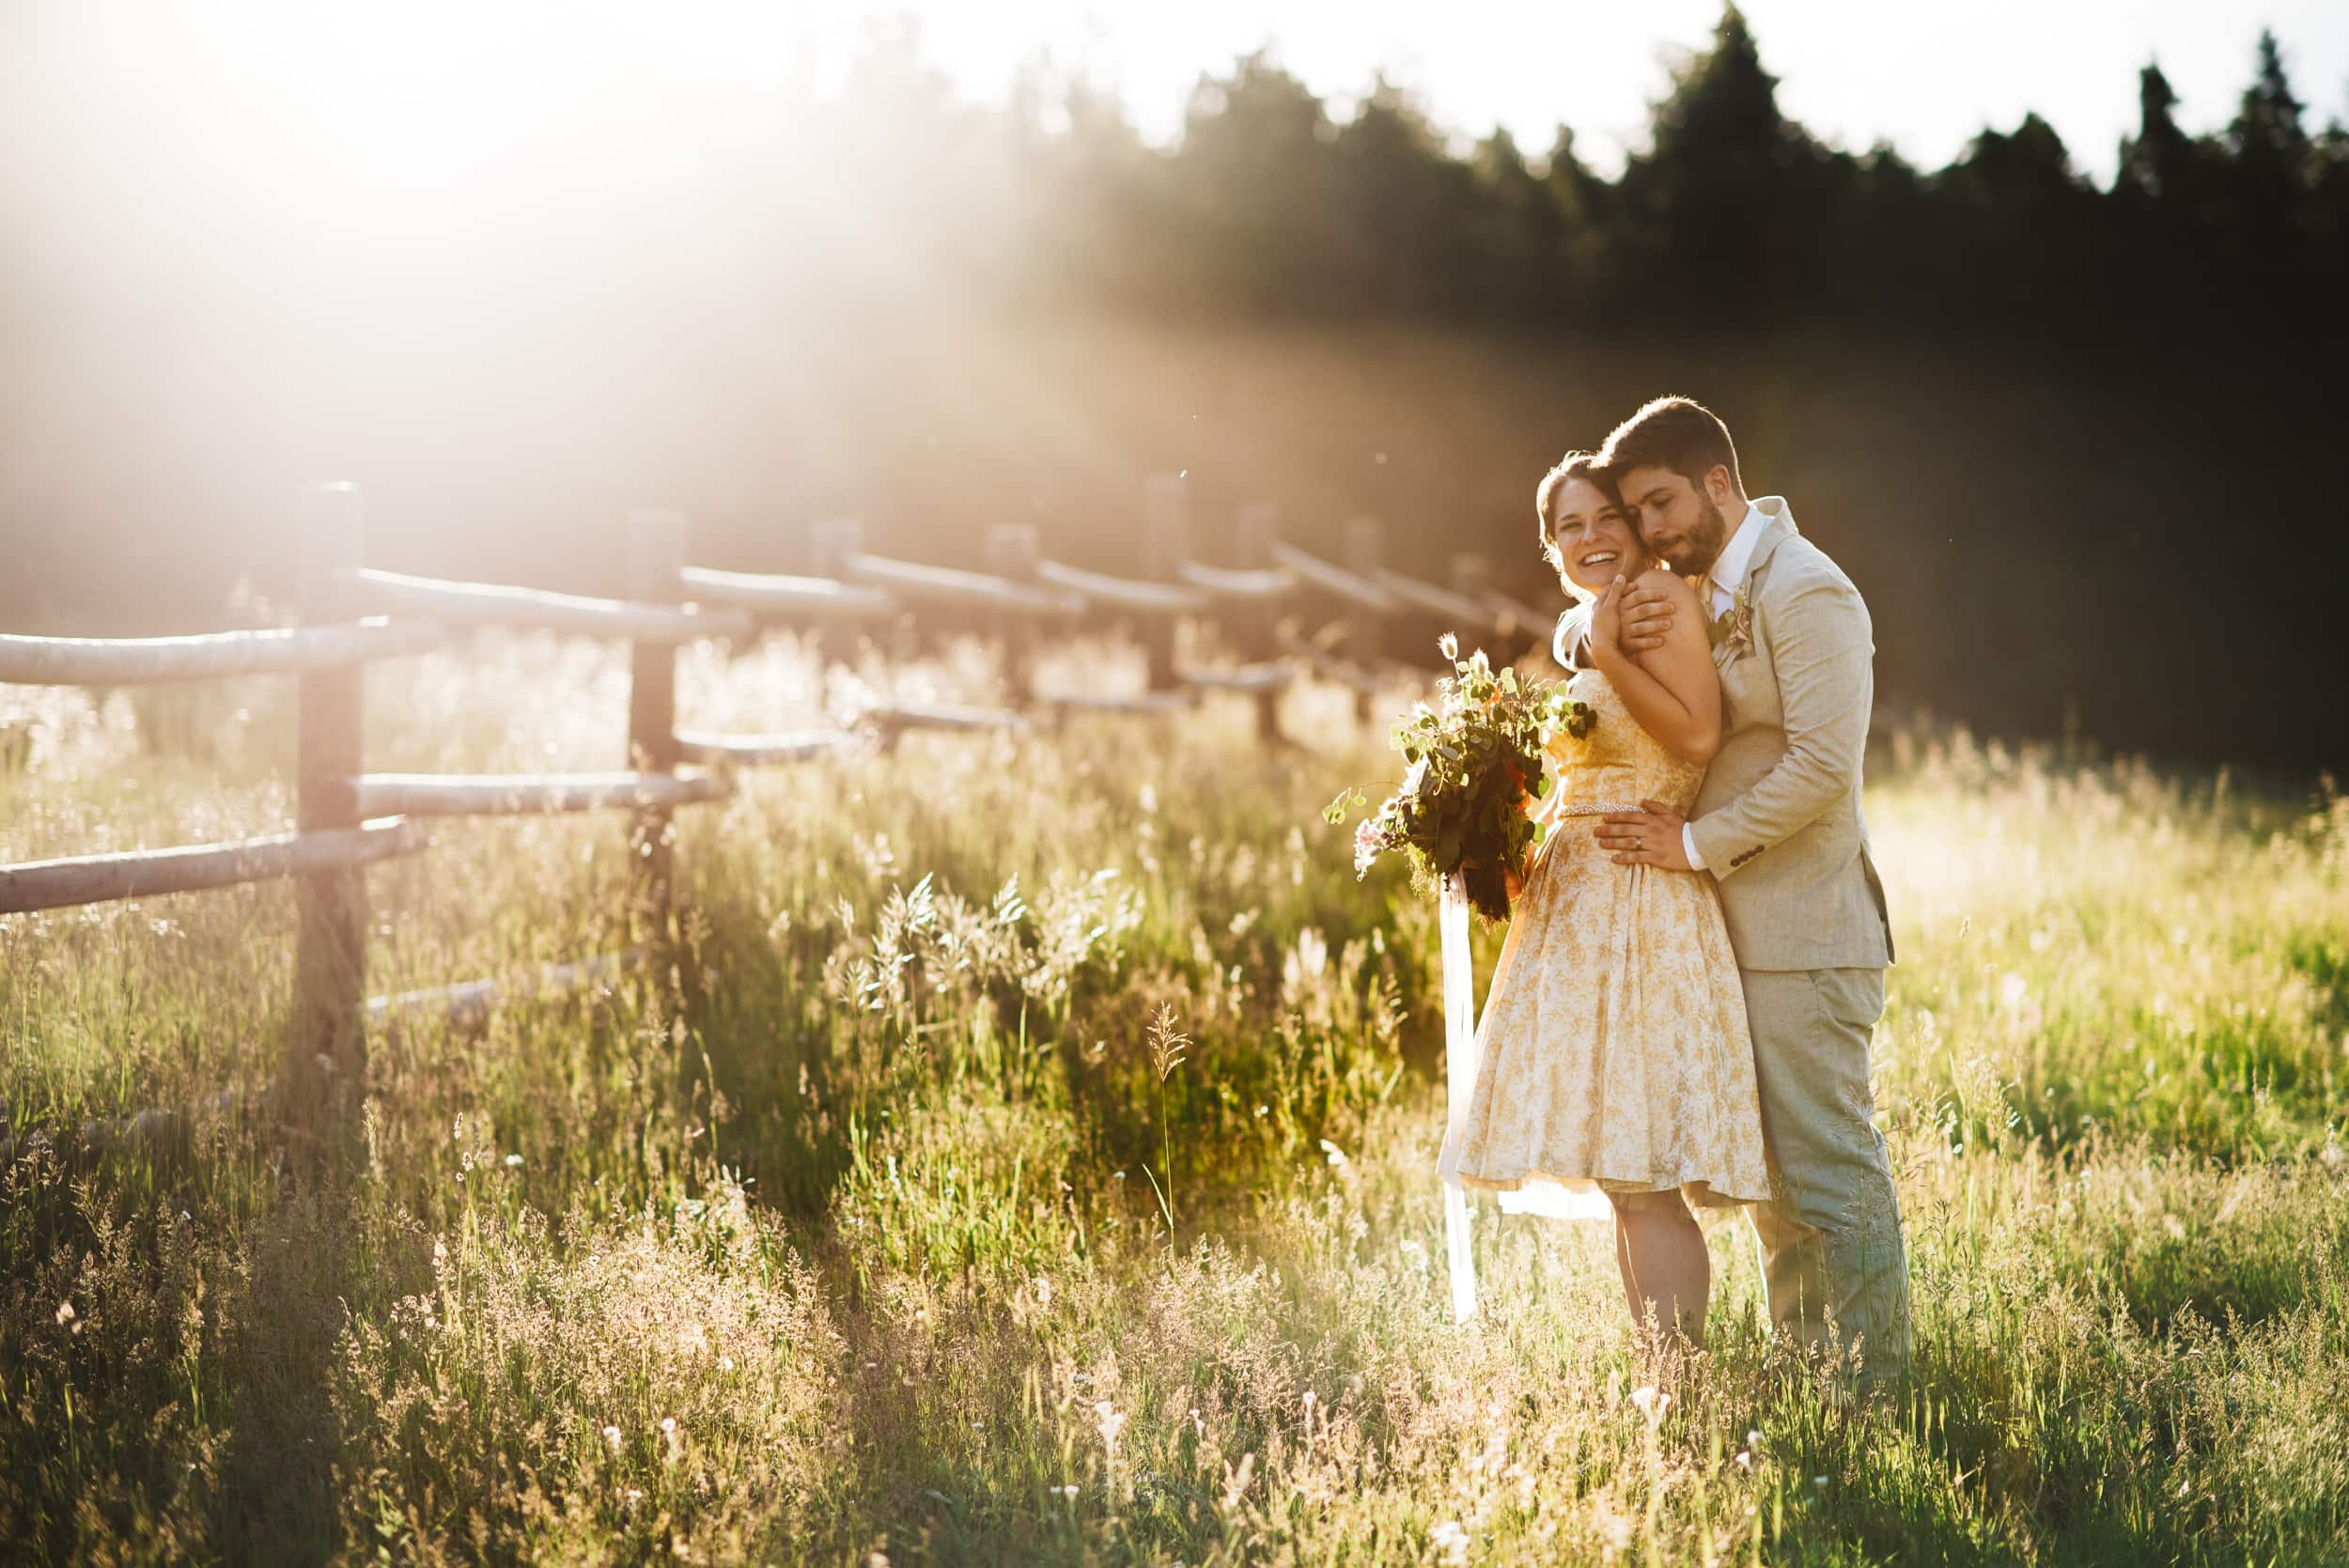 Engagement couple in late afternoon sun - photo by Kate Merrill Photo